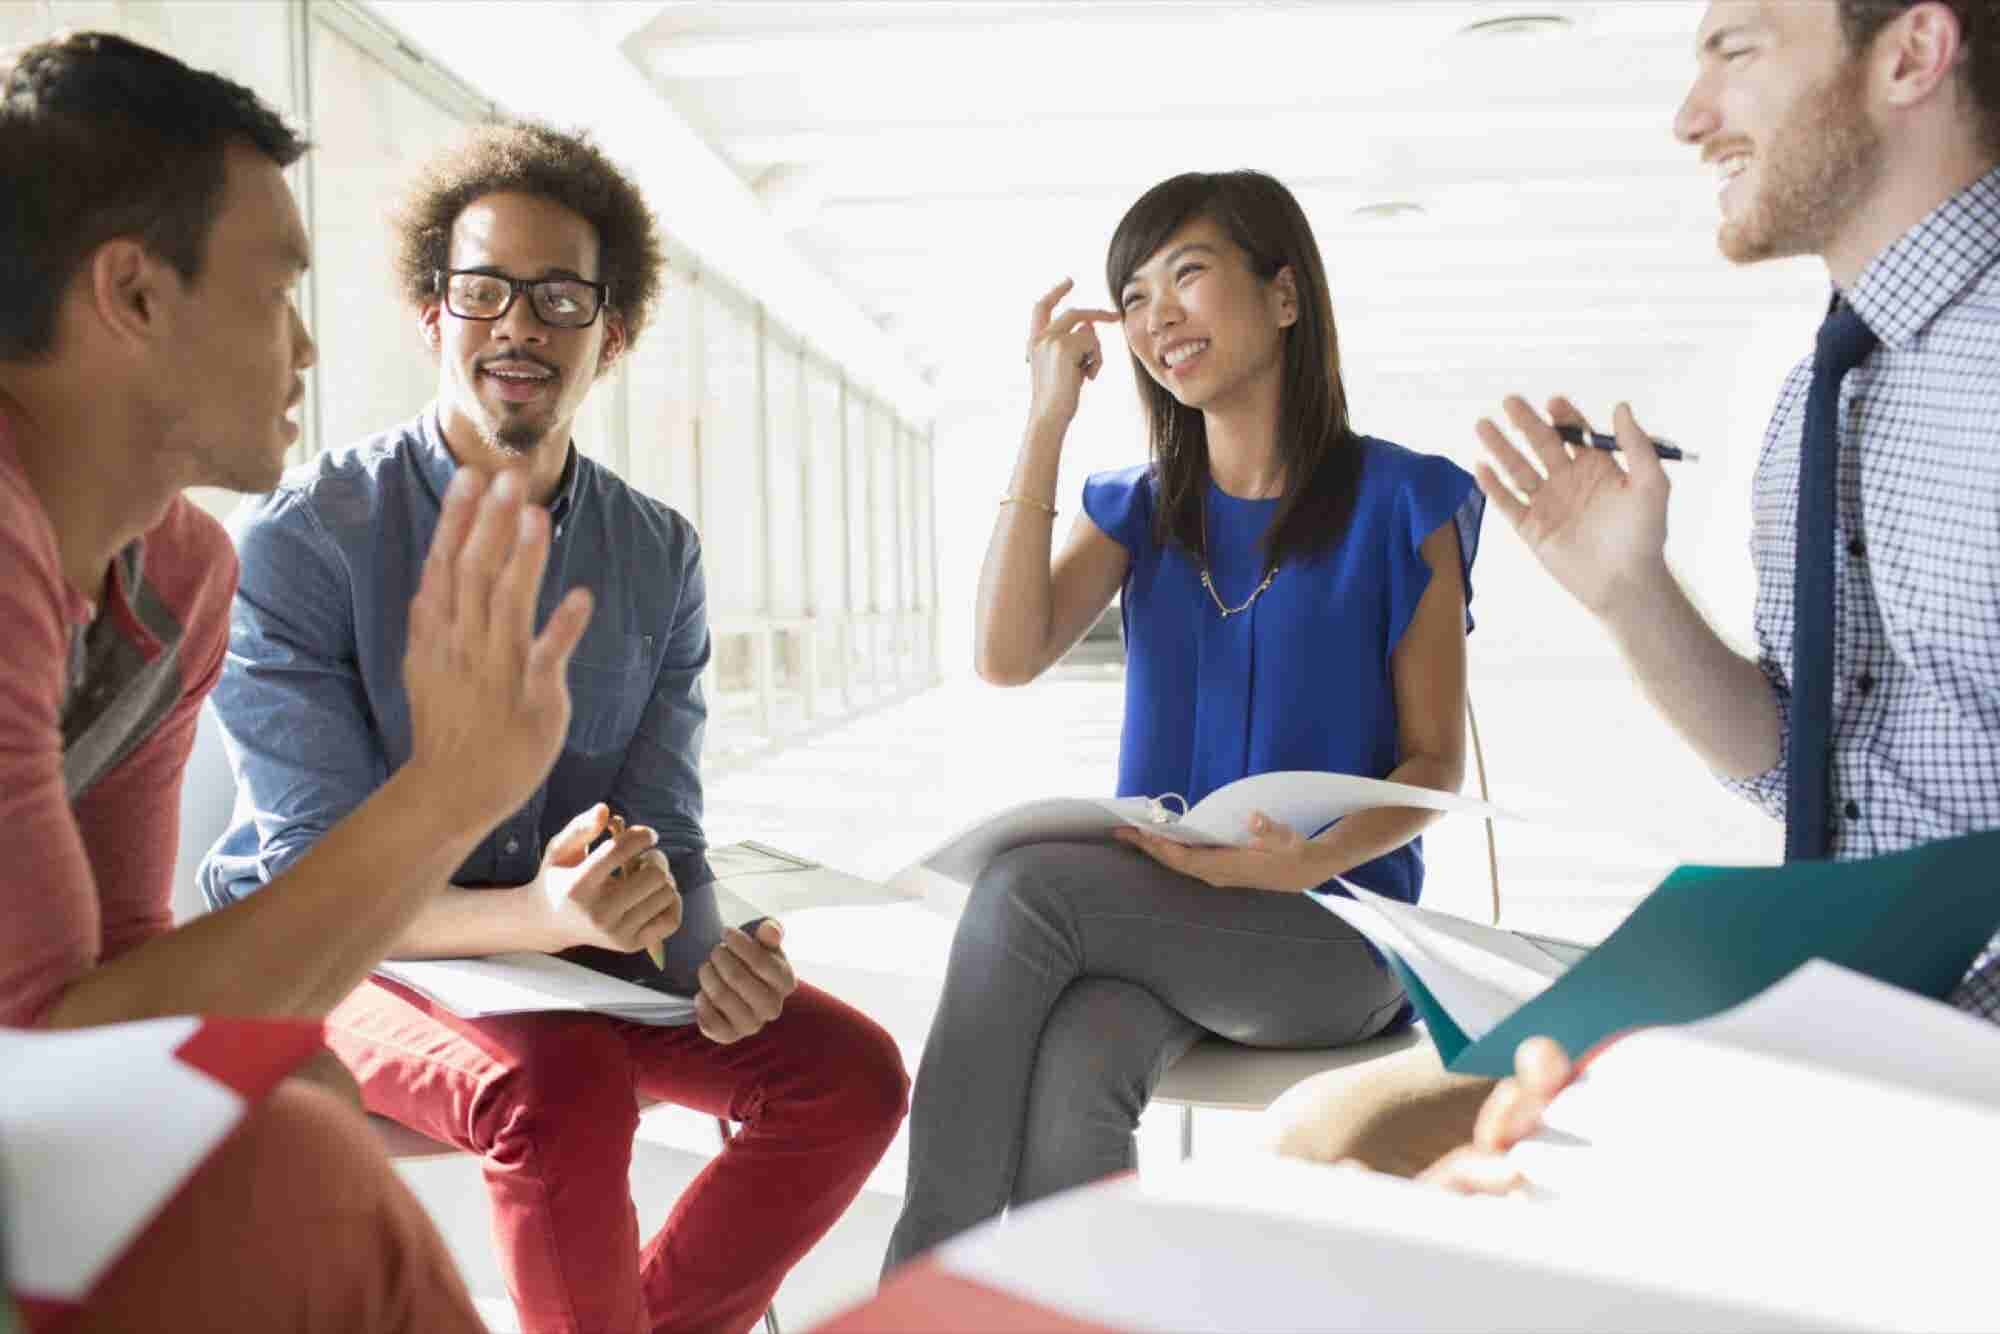 4 Secrets to Making Your Company a Happy Place to Work